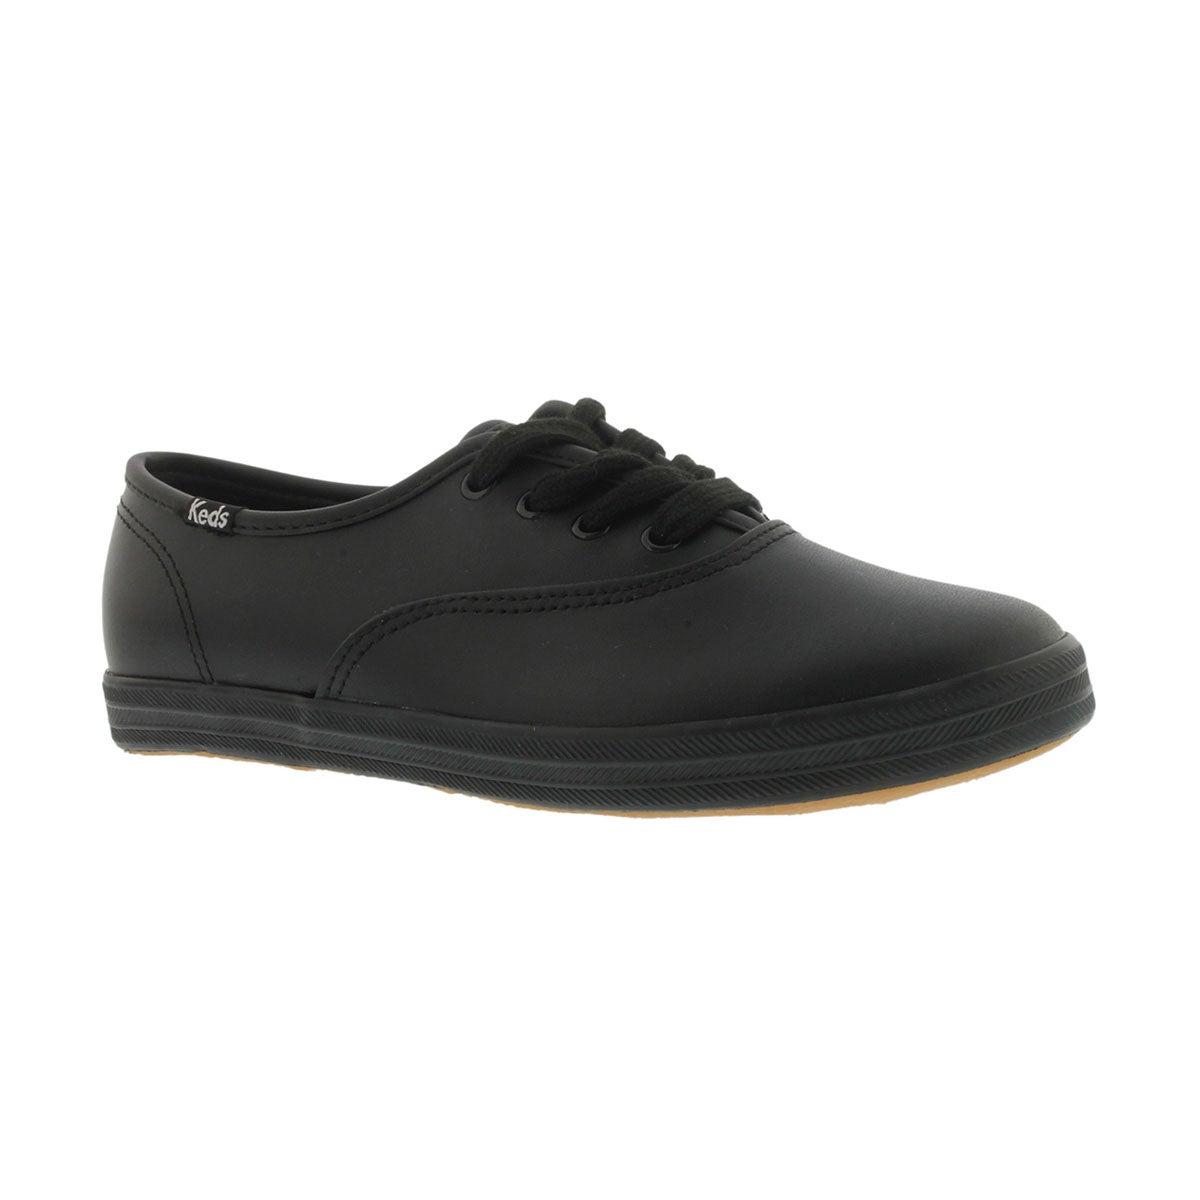 Girls' CHAMPION black leather sneakers